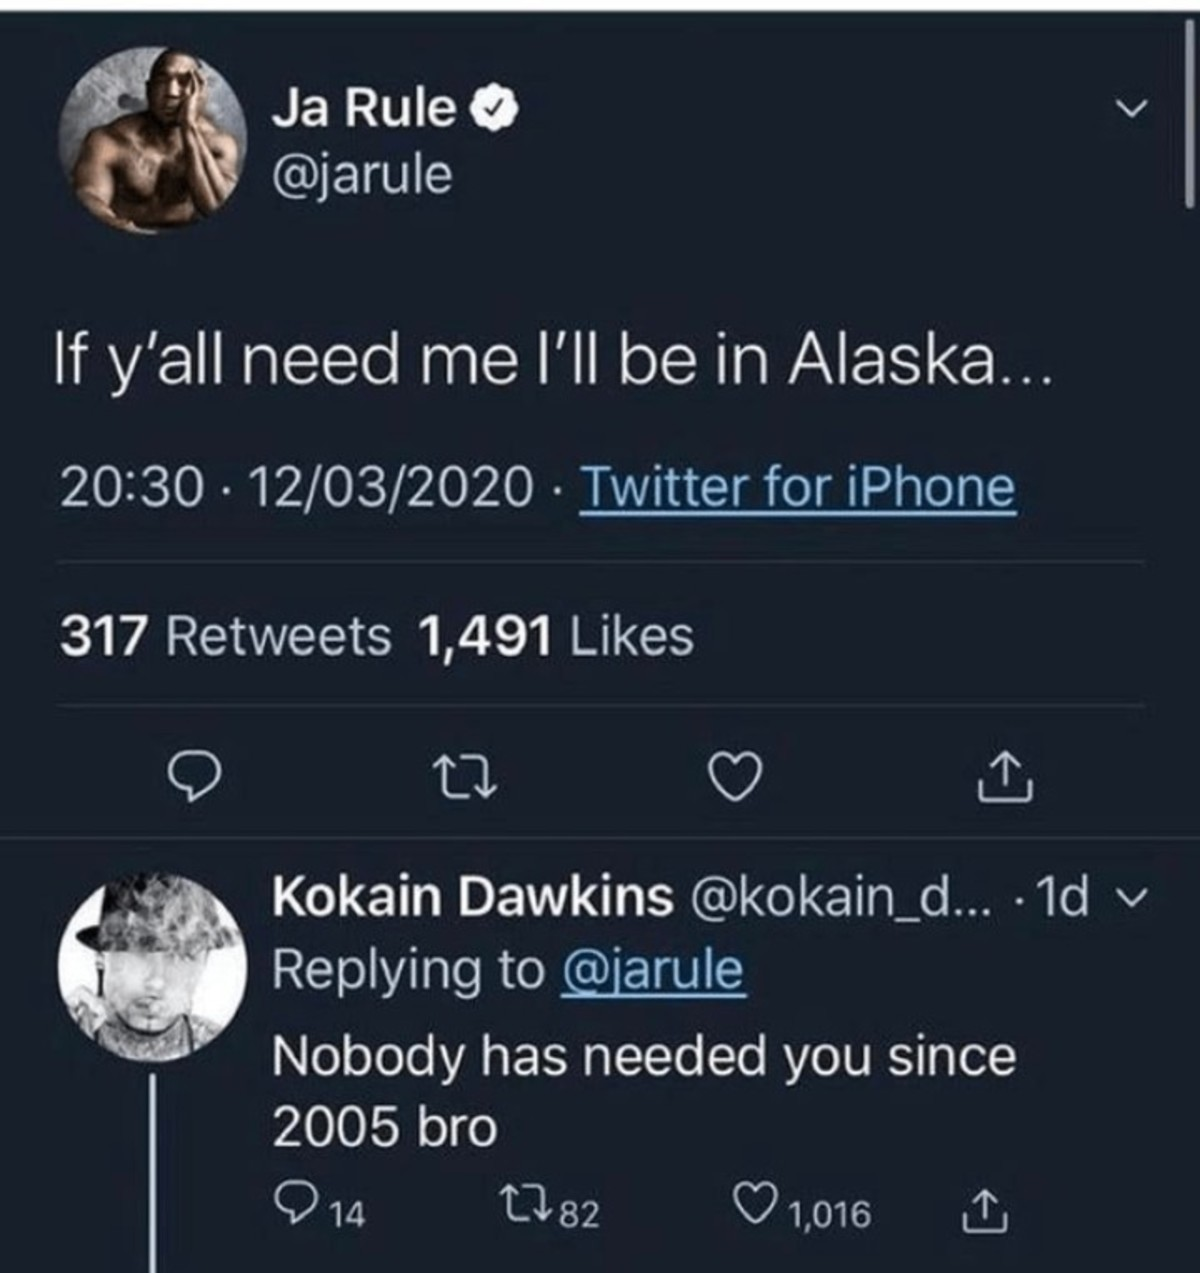 Ja who?. .. As an alaskan I would like to let you know that this is not the place for you